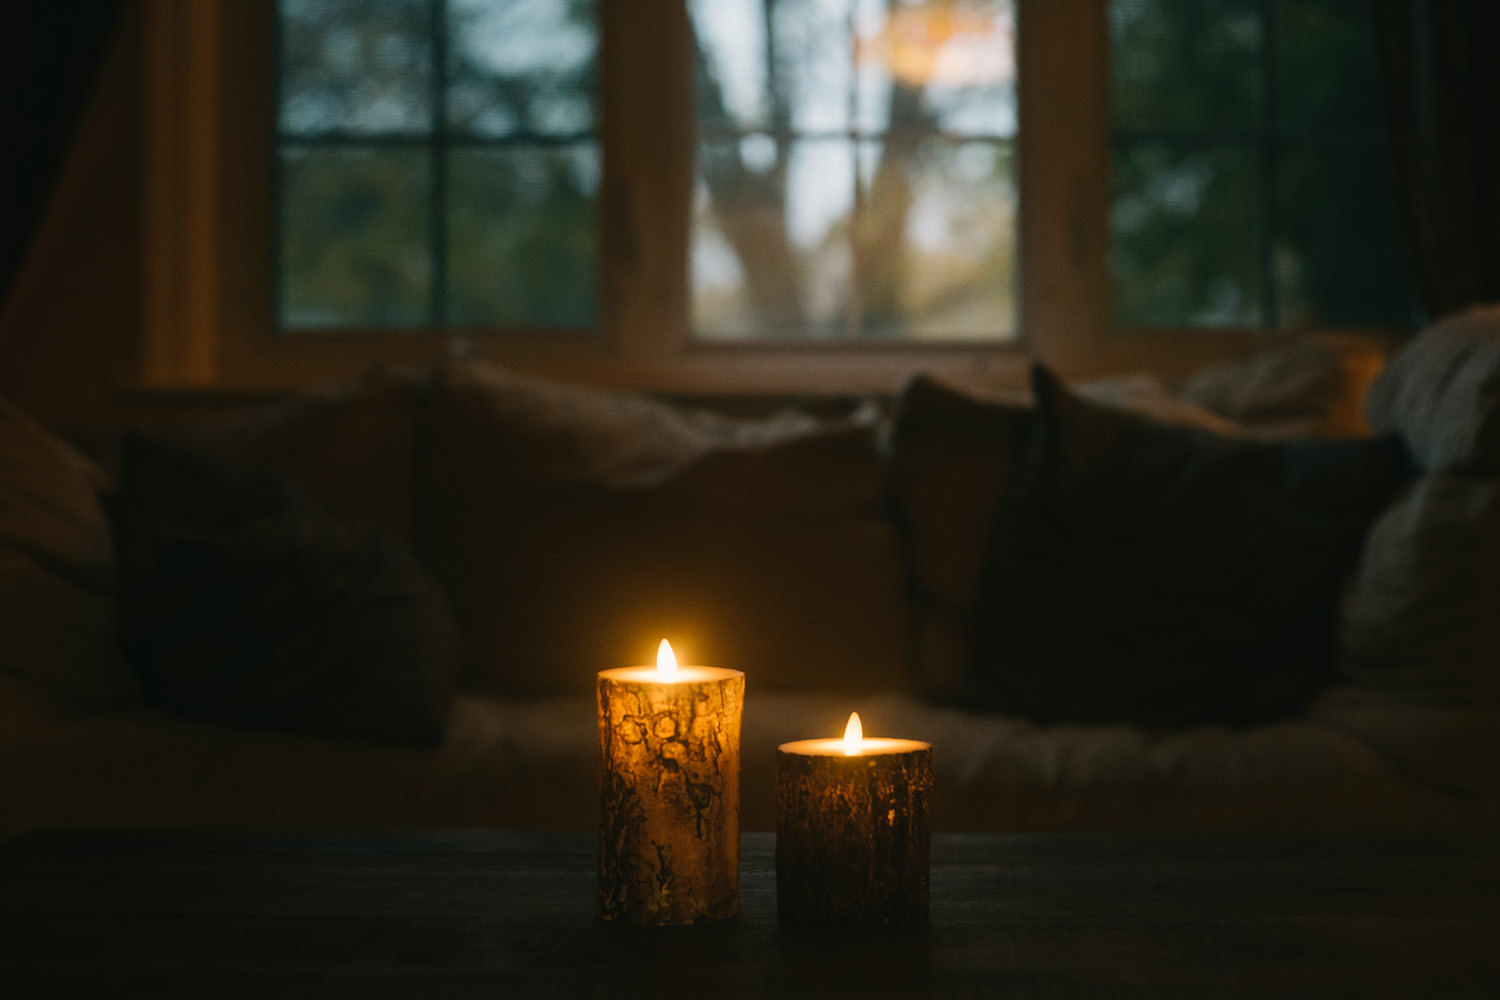 Candles burning on a coffee table.